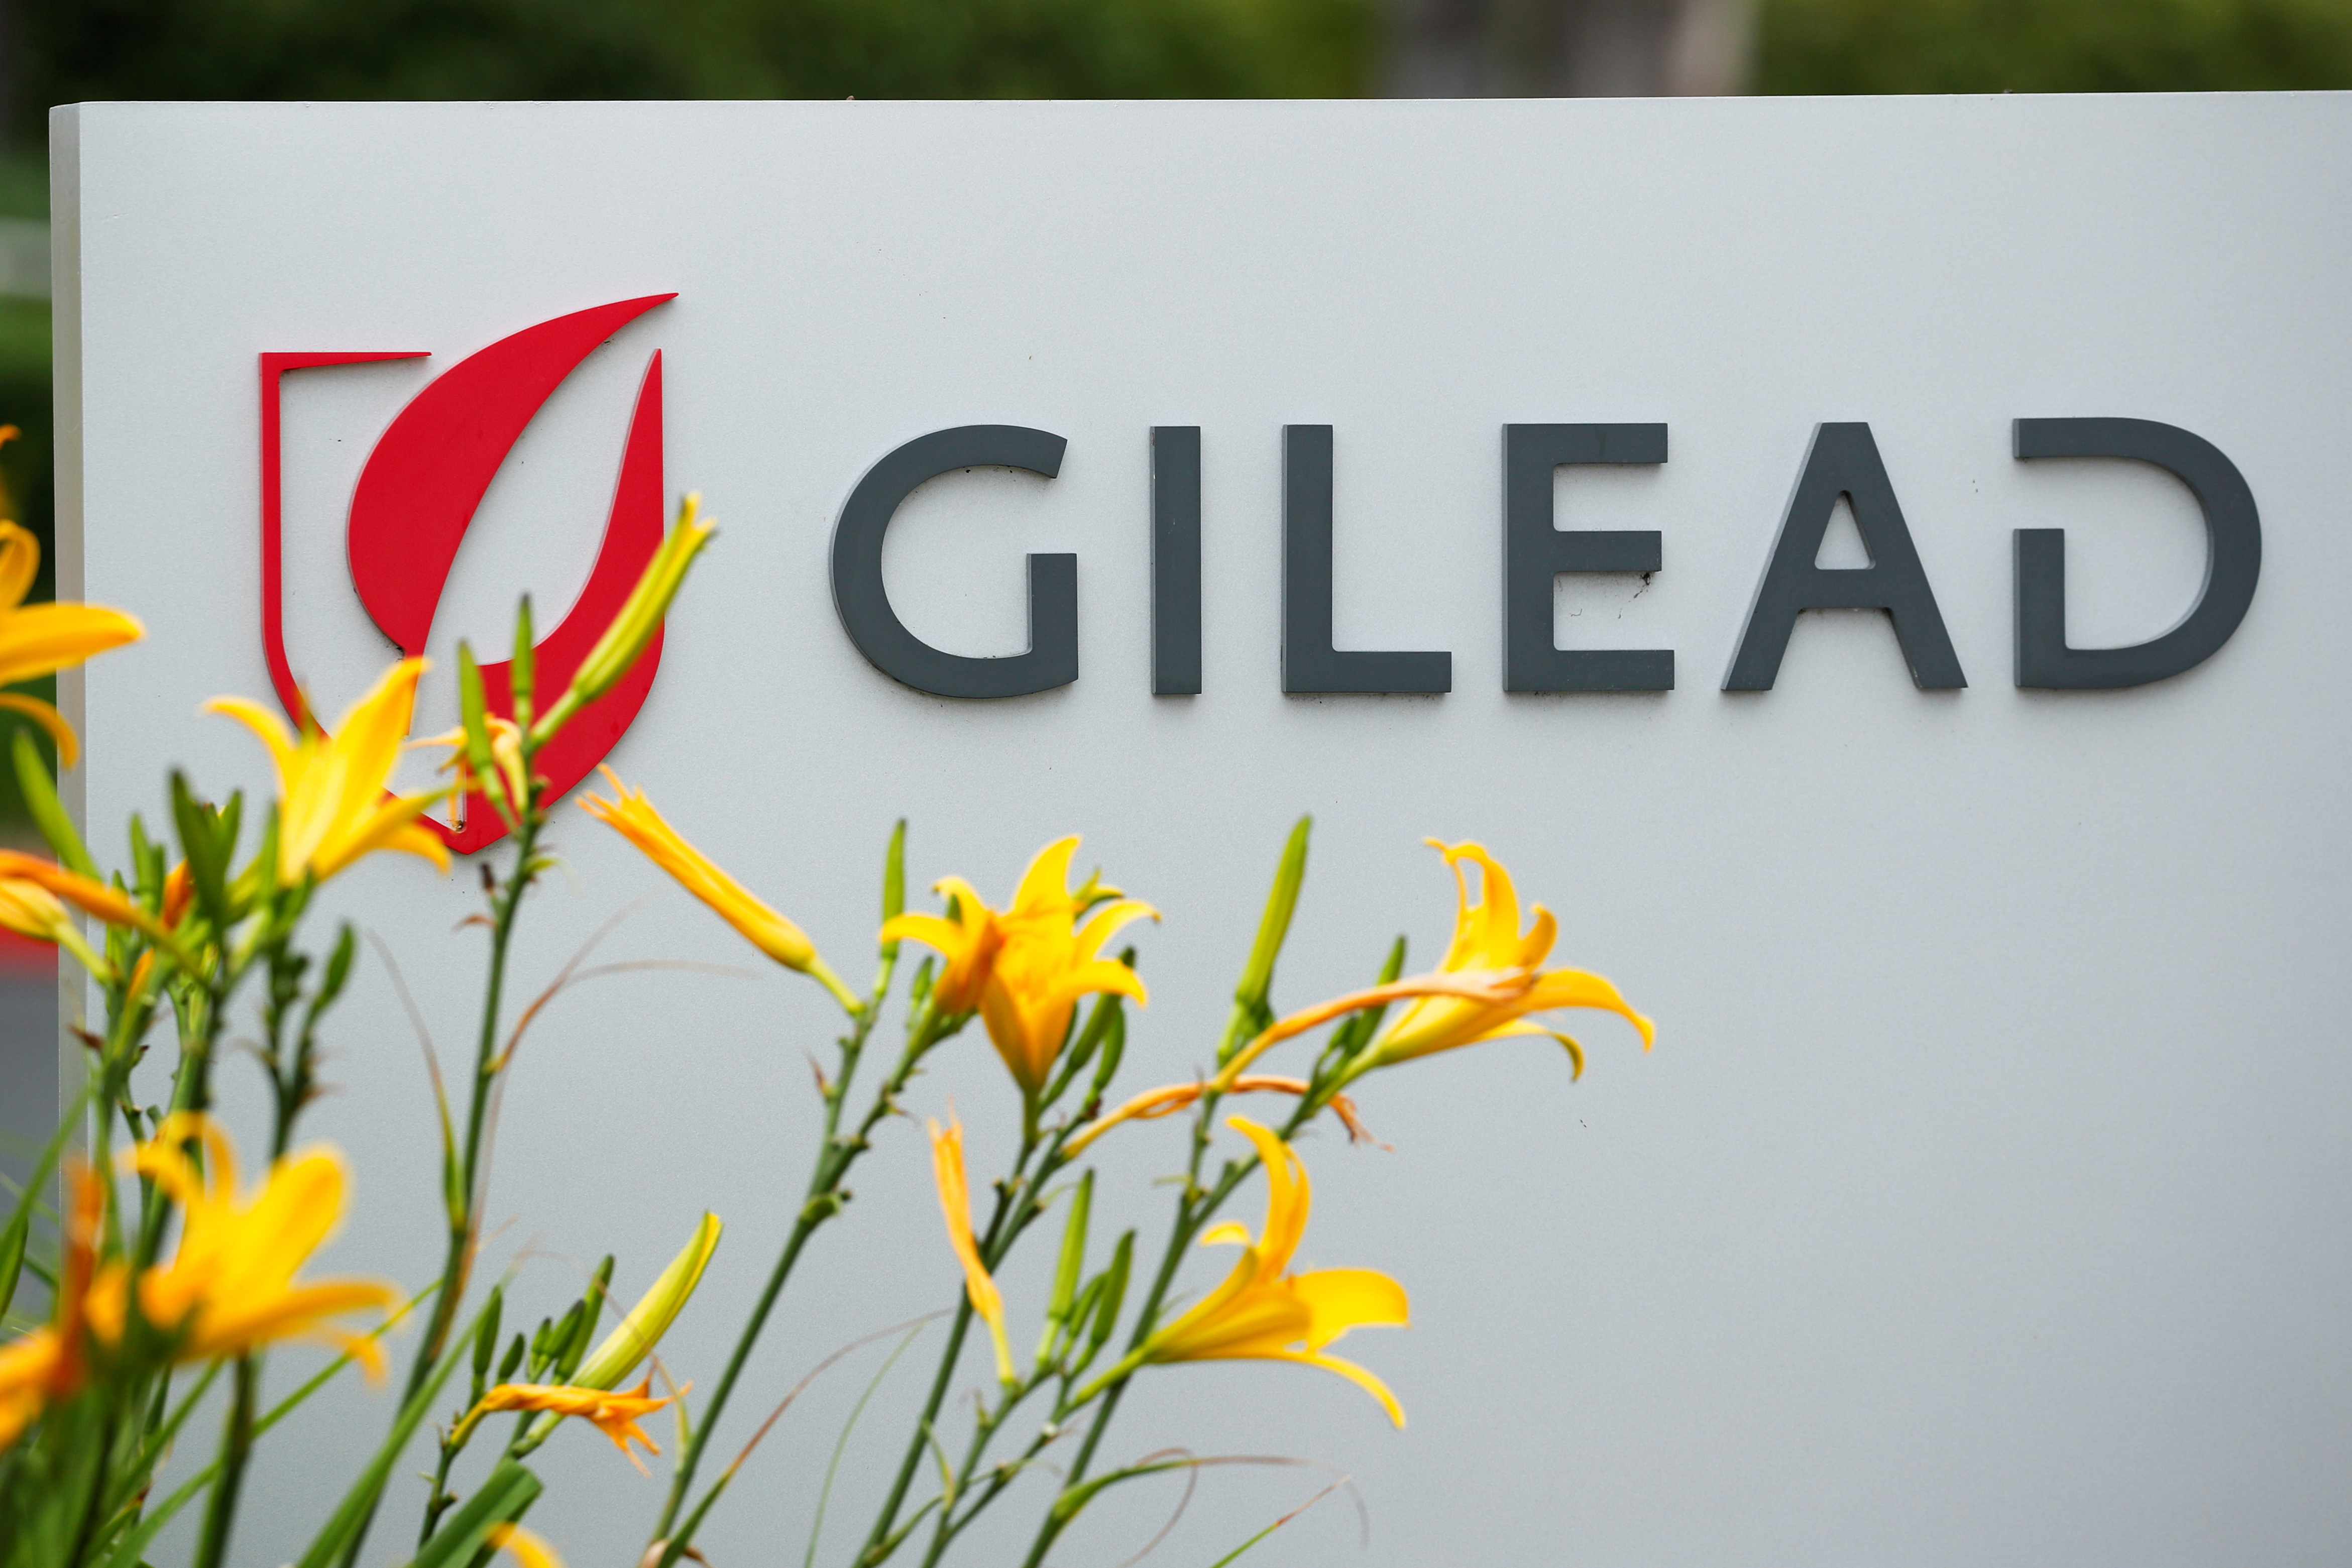 Gilead Sciences Inc pharmaceutical company is seen after they announced a Phase 3 Trial of the investigational antiviral drug Remdesivir in patients with severe coronavirus disease (COVID-19), during the outbreak of the coronavirus disease (COVID-19), in Oceanside, California, U.S., April 29, 2020. REUTERS/Mike Blake/File Photo